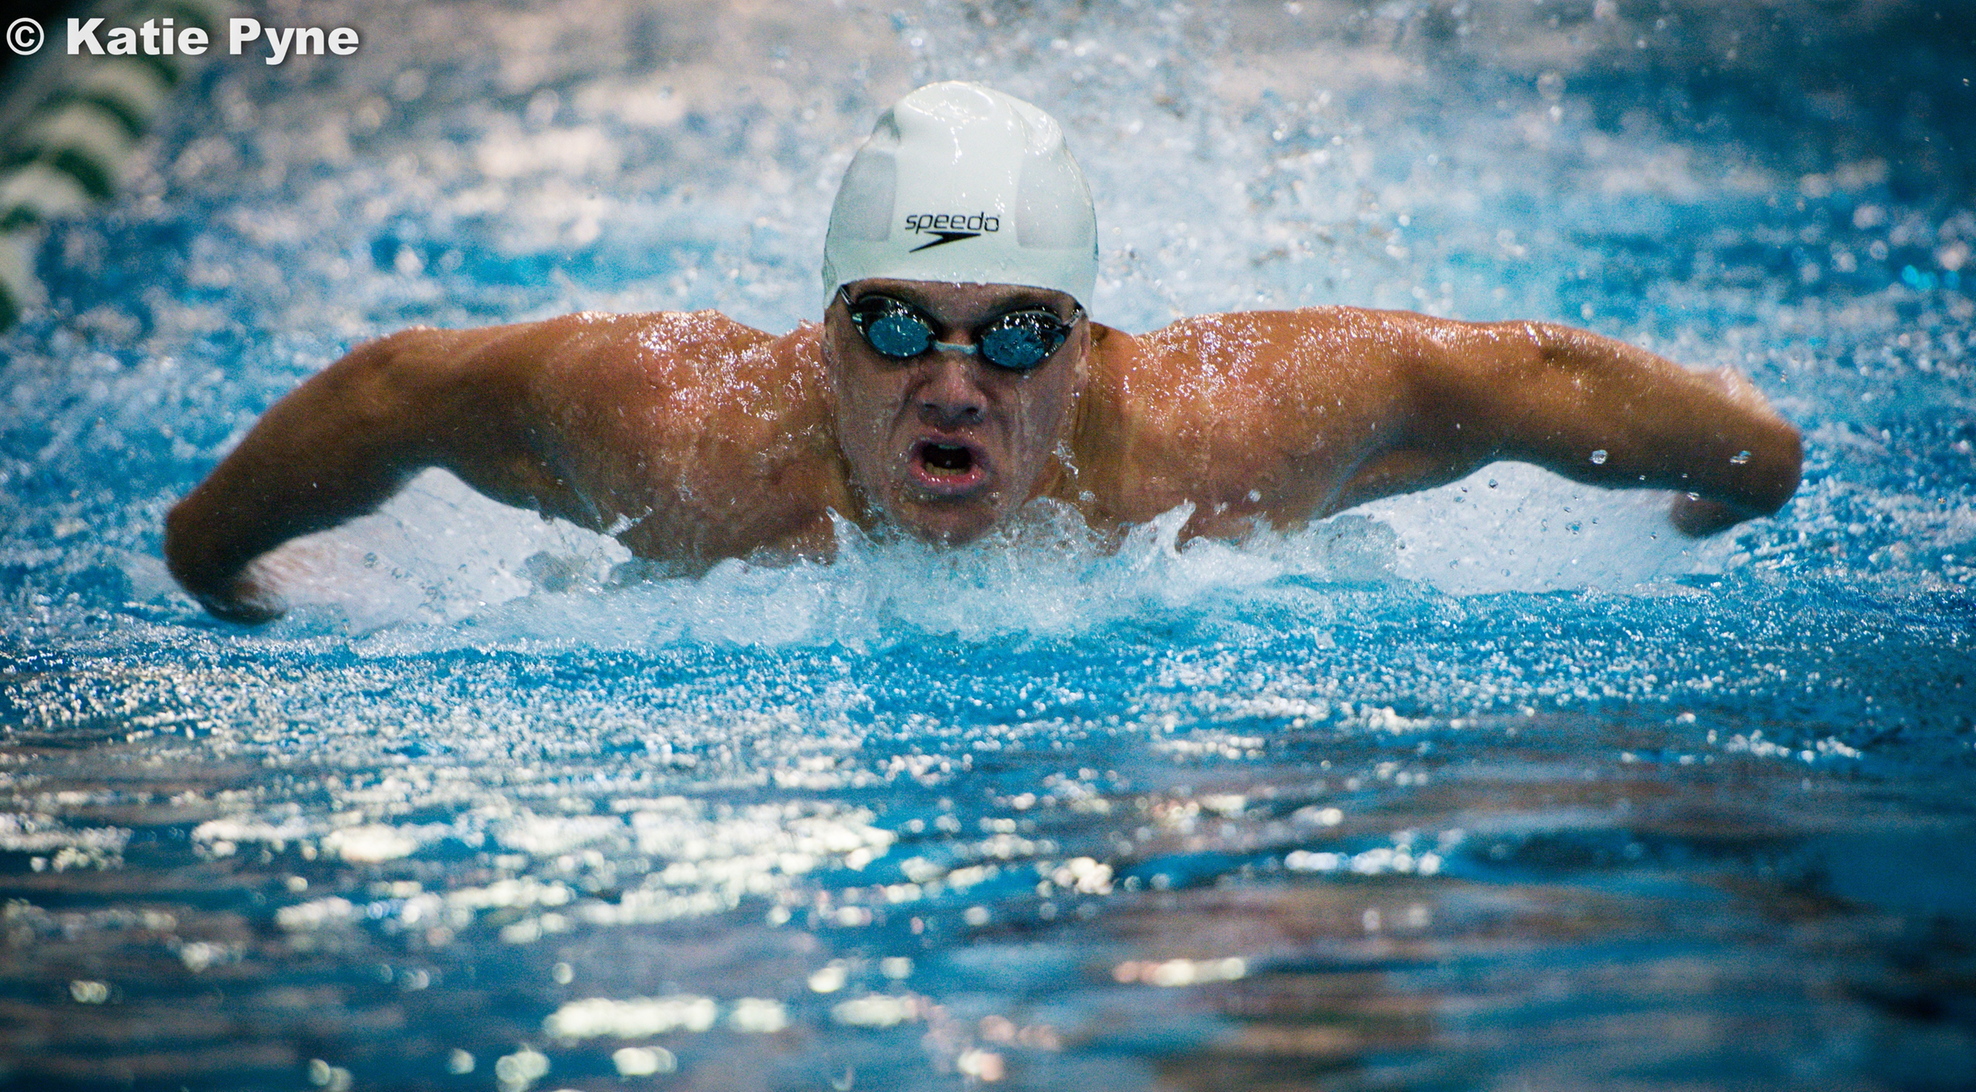 Pon, Harry Bennett headline first day of Collegiate Winter Invitational